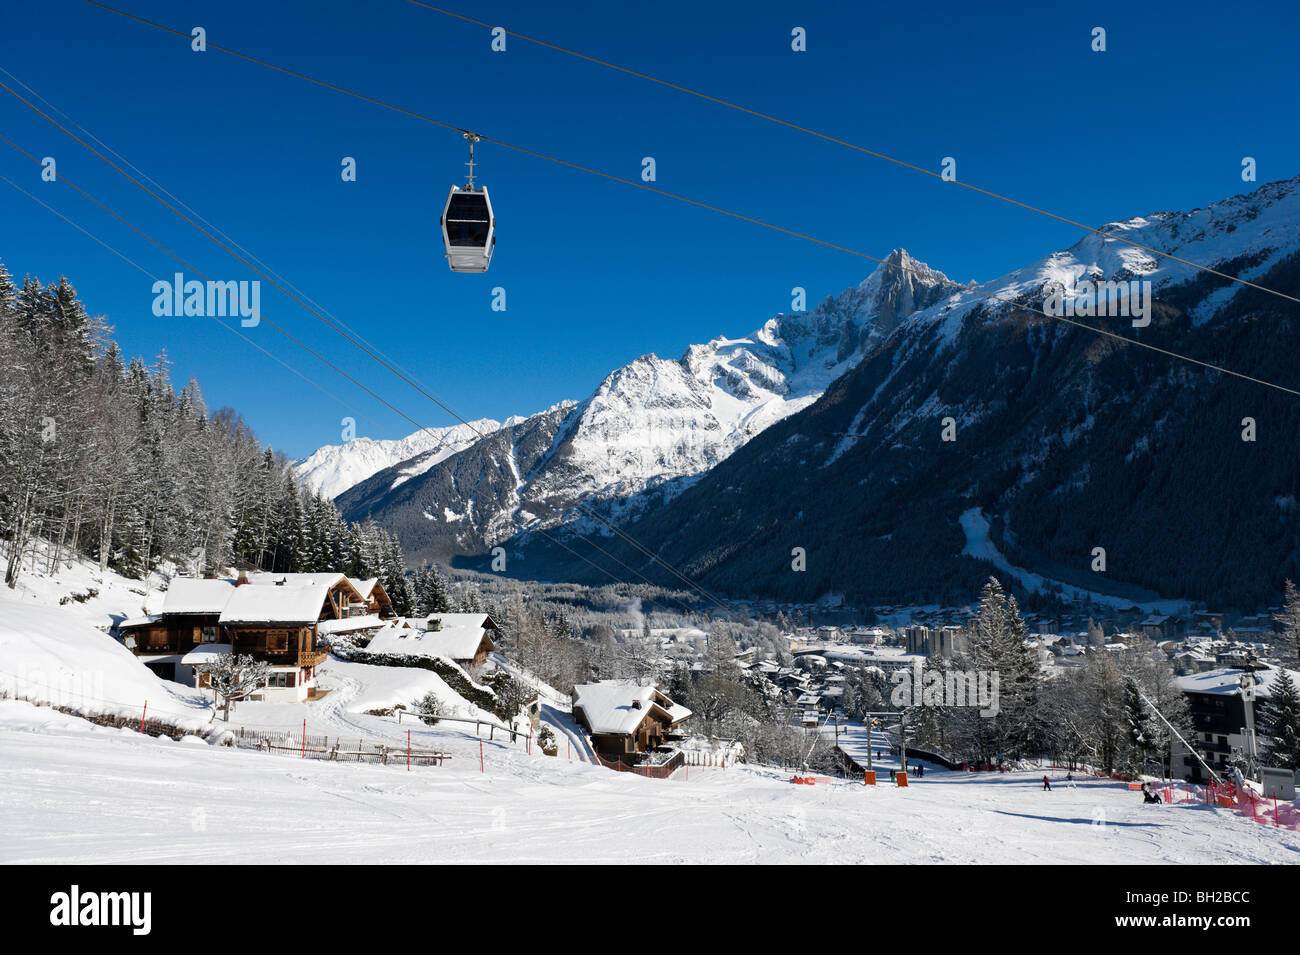 View over the resort from the nursery slopes by Le Brevent lift, Chamonix Mont Blanc, Haute Savoie, France - Stock Image